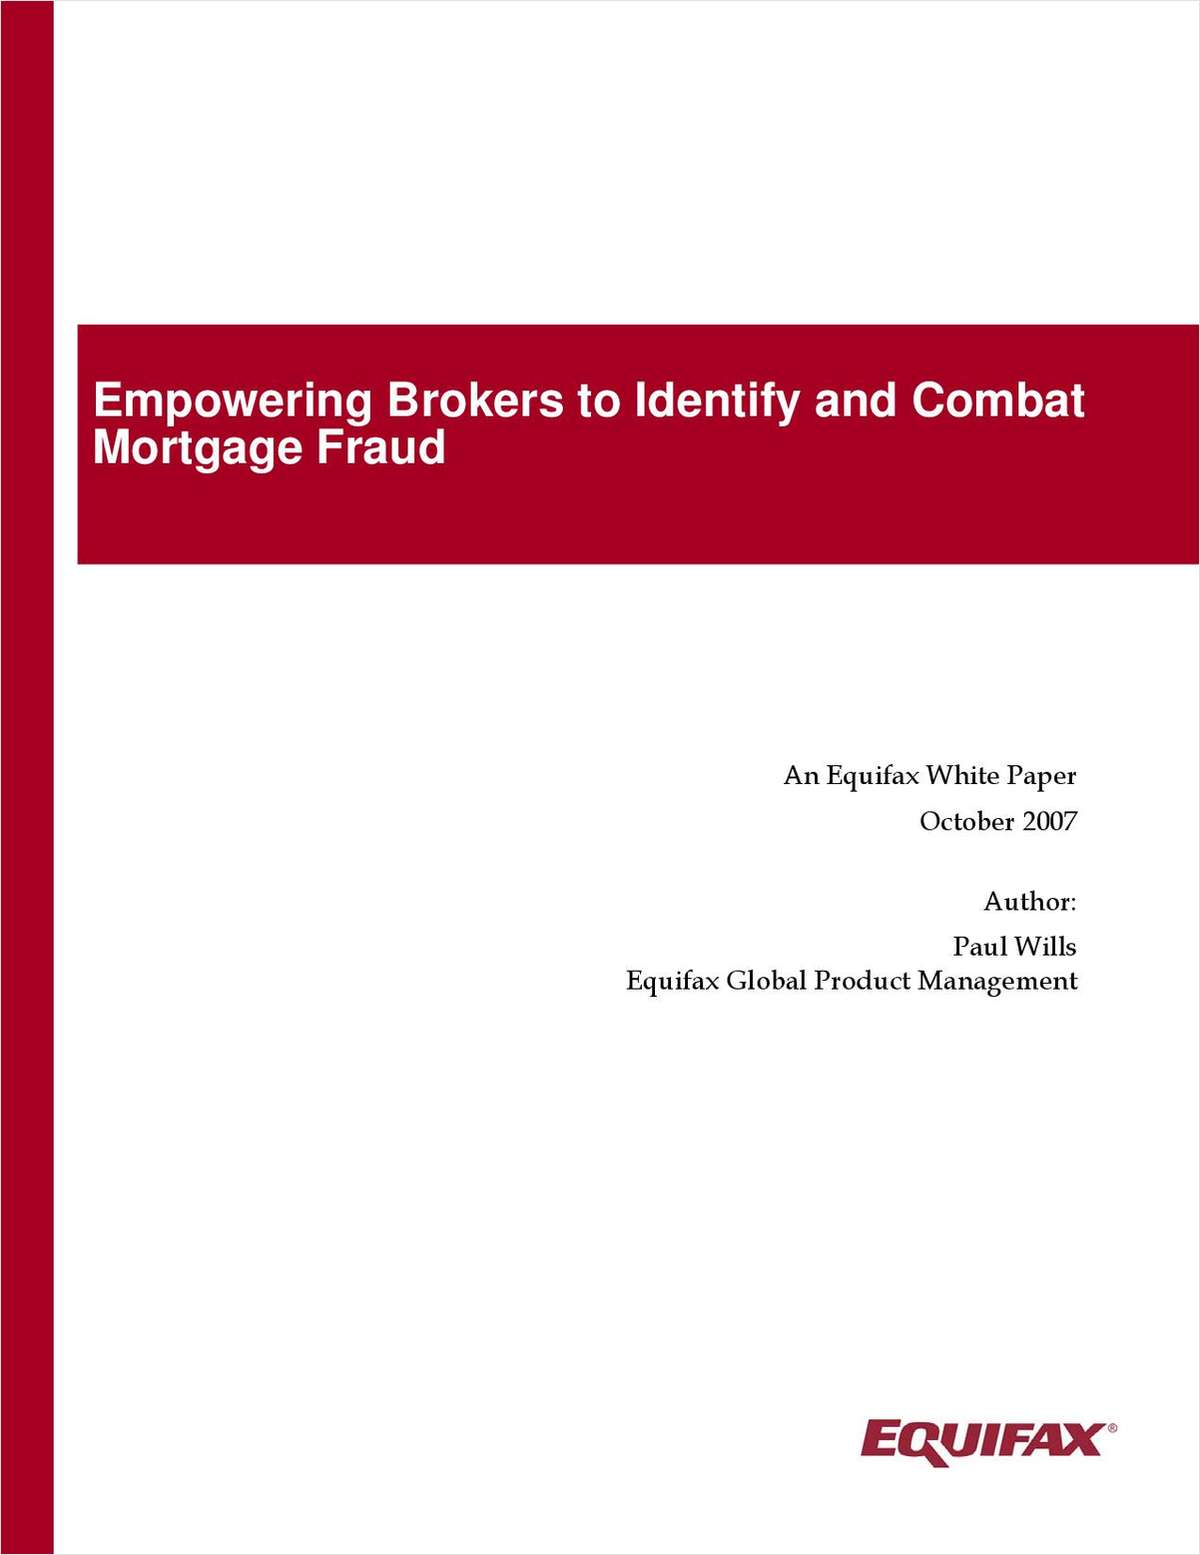 Empowering Brokers to Identify and Combat Mortgage Fraud